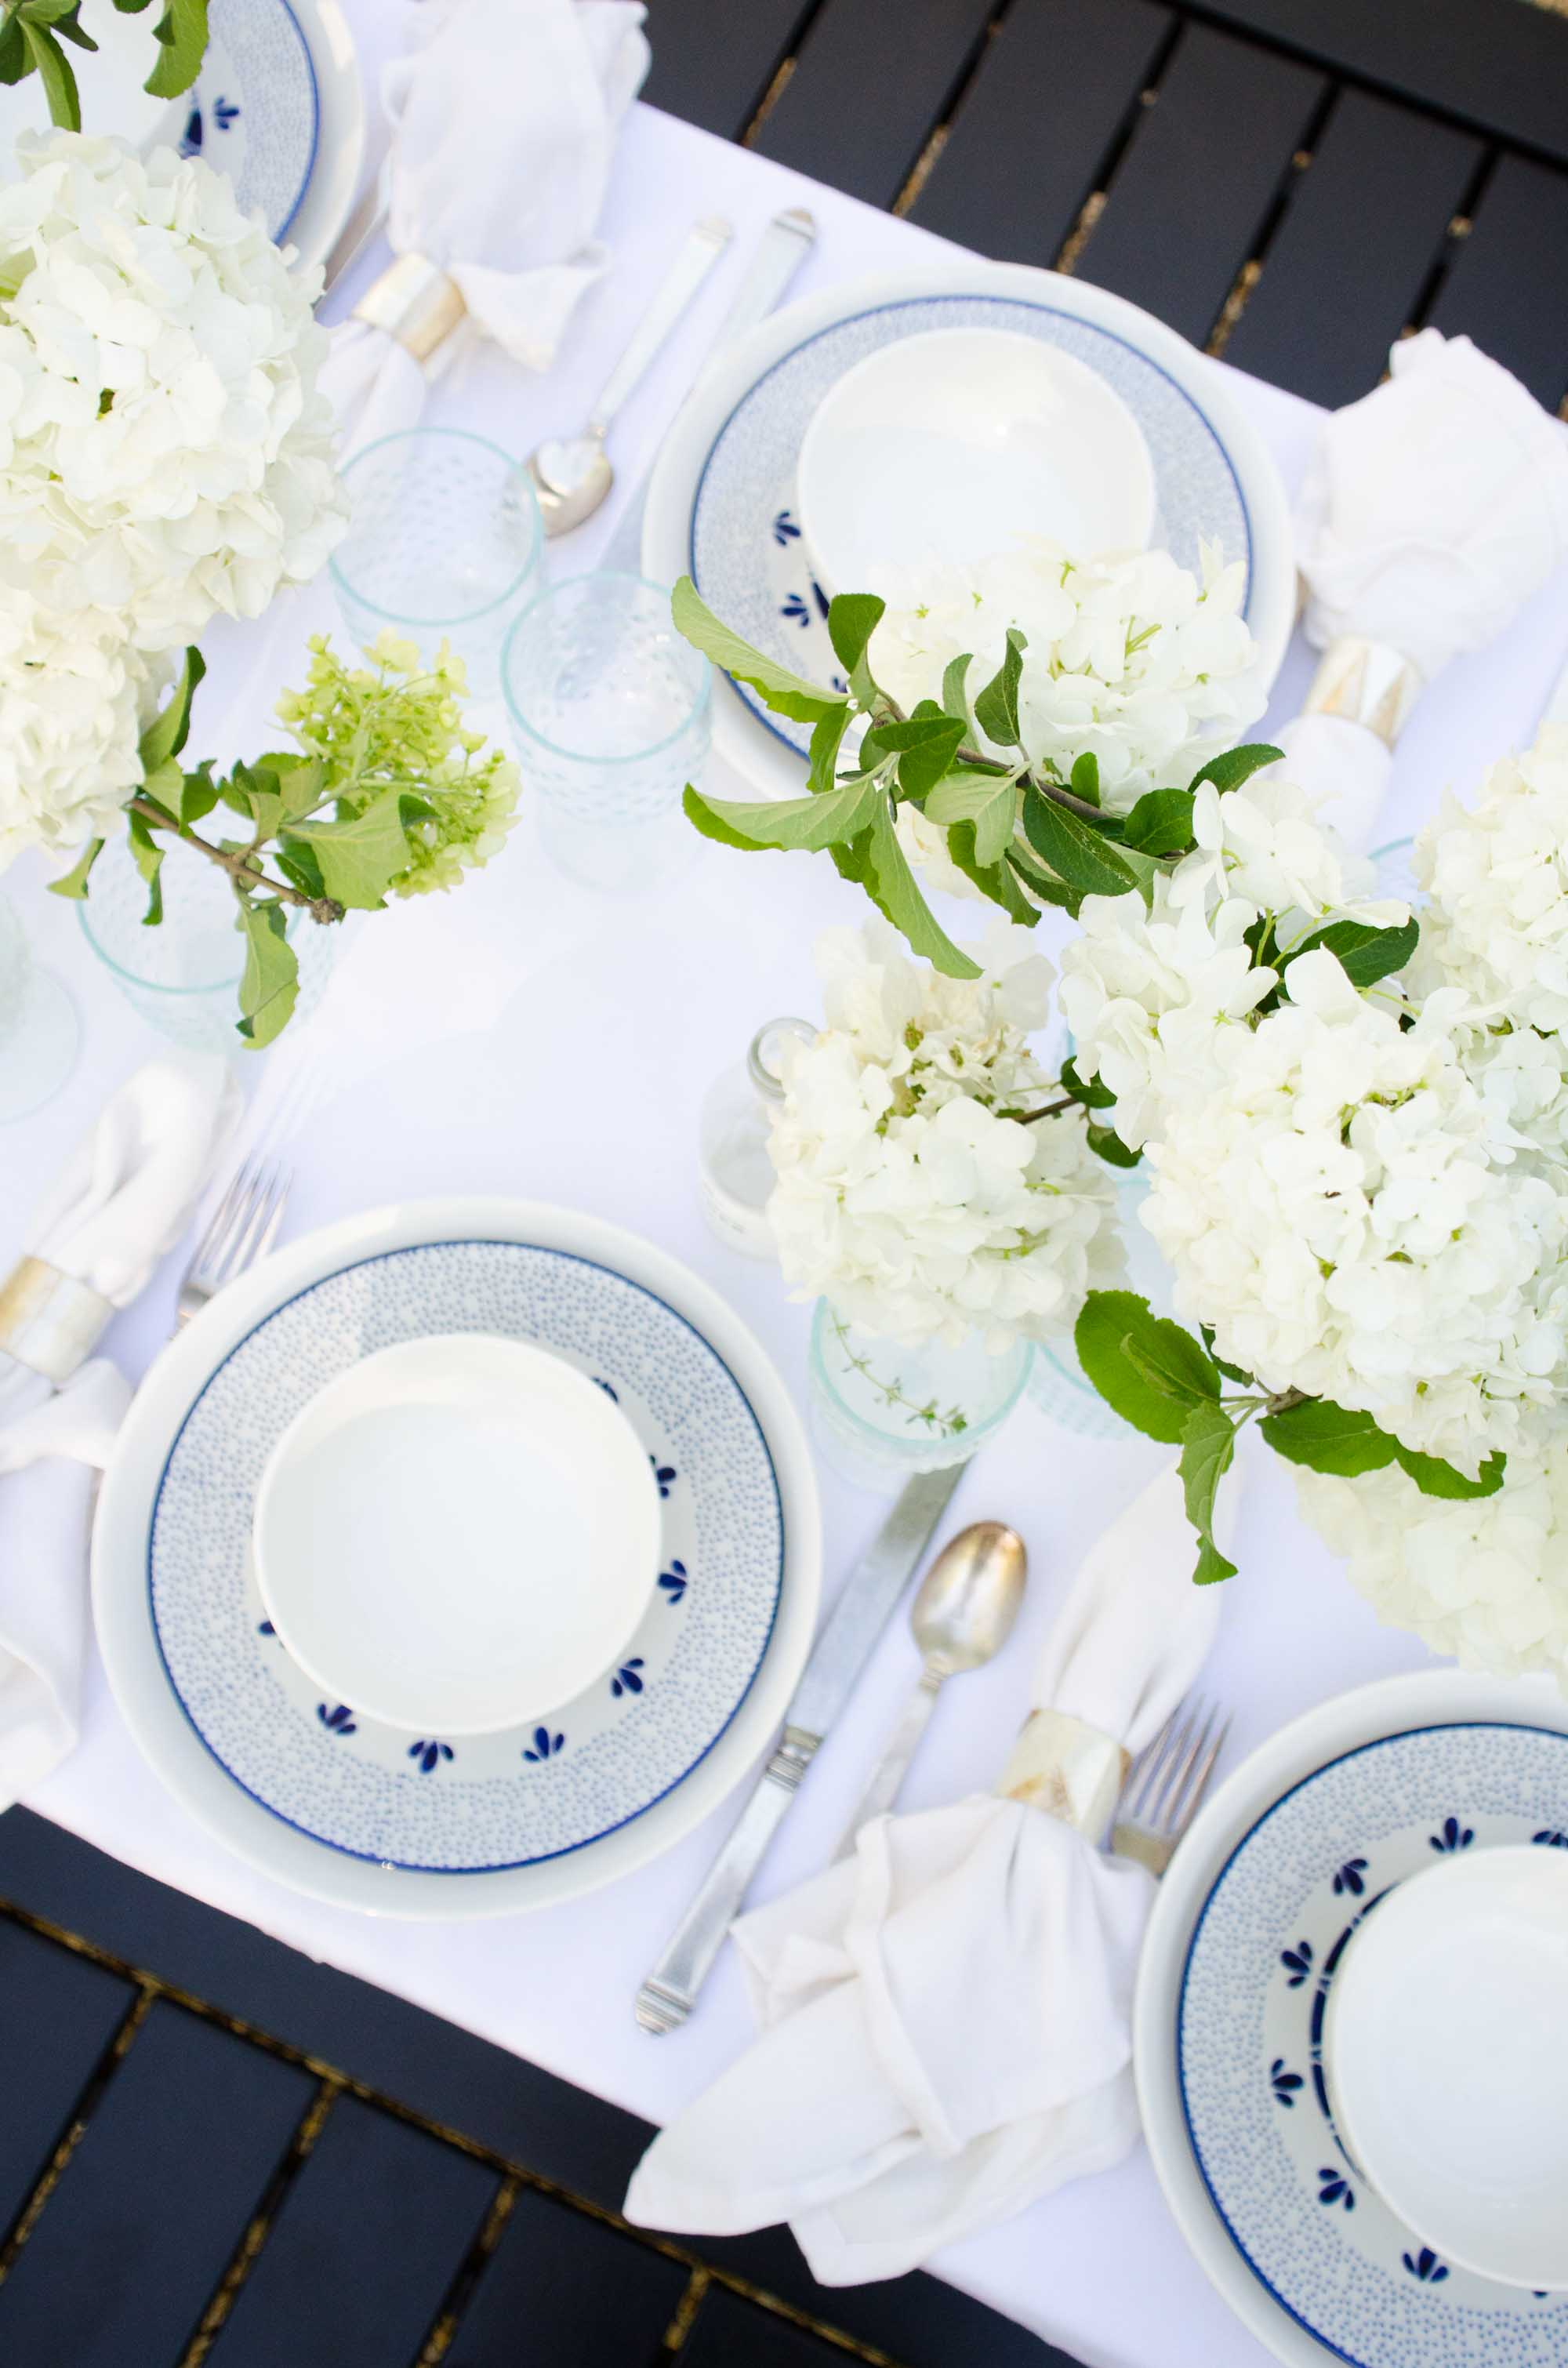 west elm - Alfresco dinner party with @thouswellblog